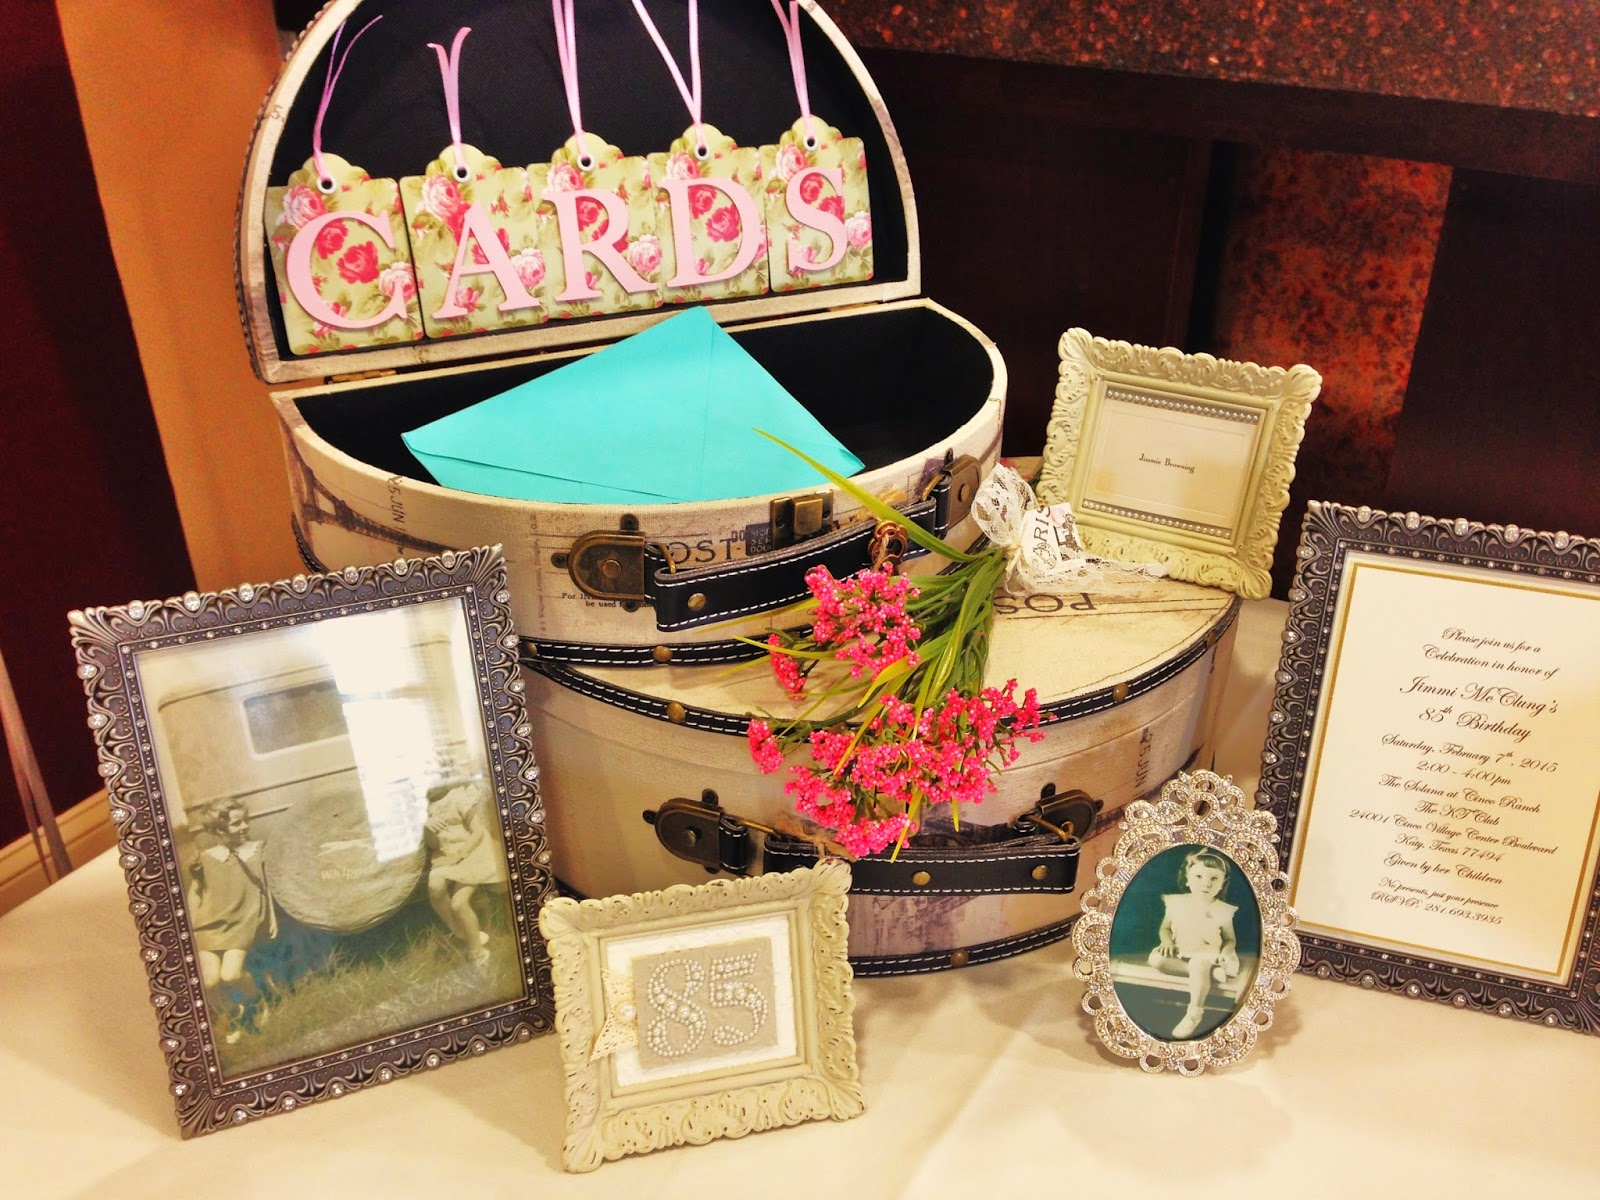 Of My Mom In Vintage Frames Was A Great Way To Decorate The Tables Trunk Place For Everyone Put Their Birthday Cards